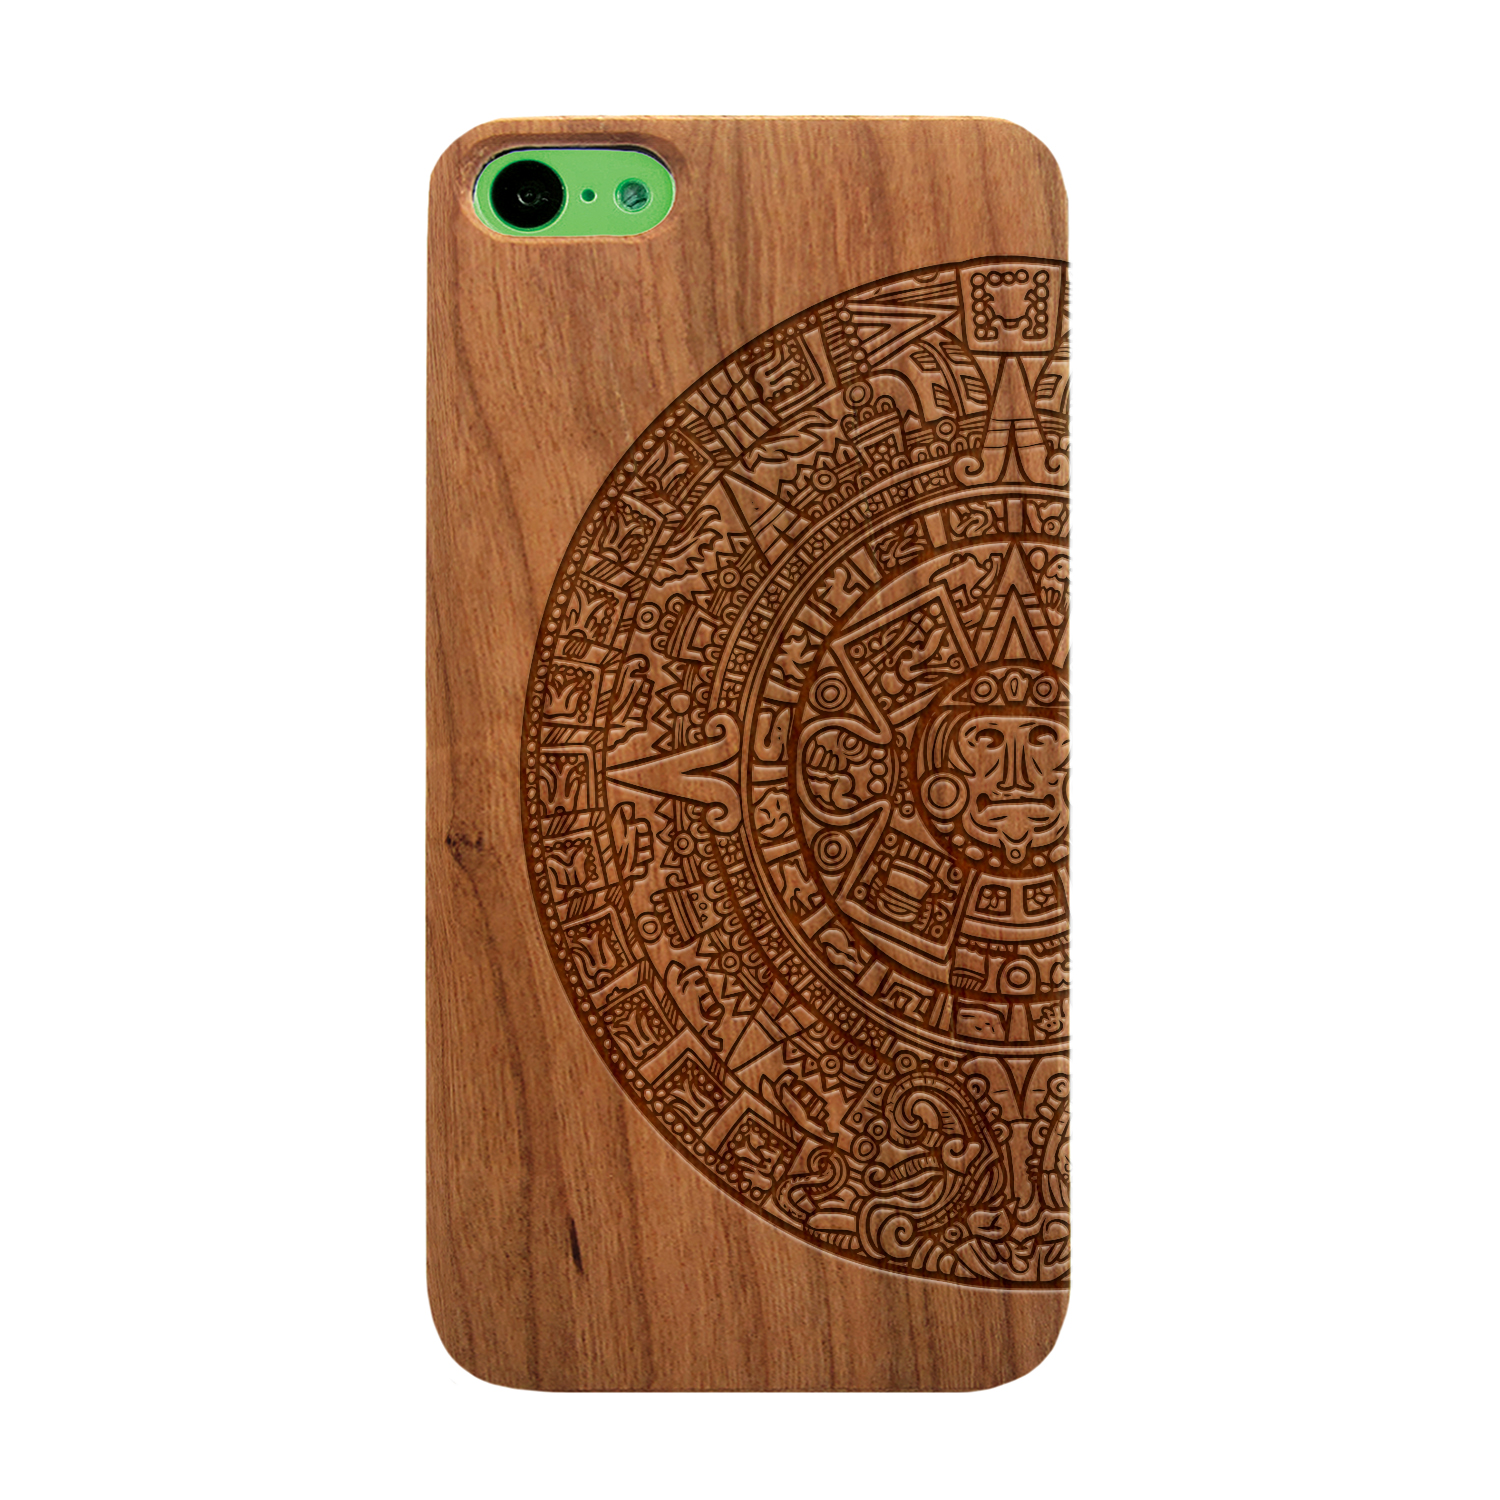 Engraved Iphone  Case